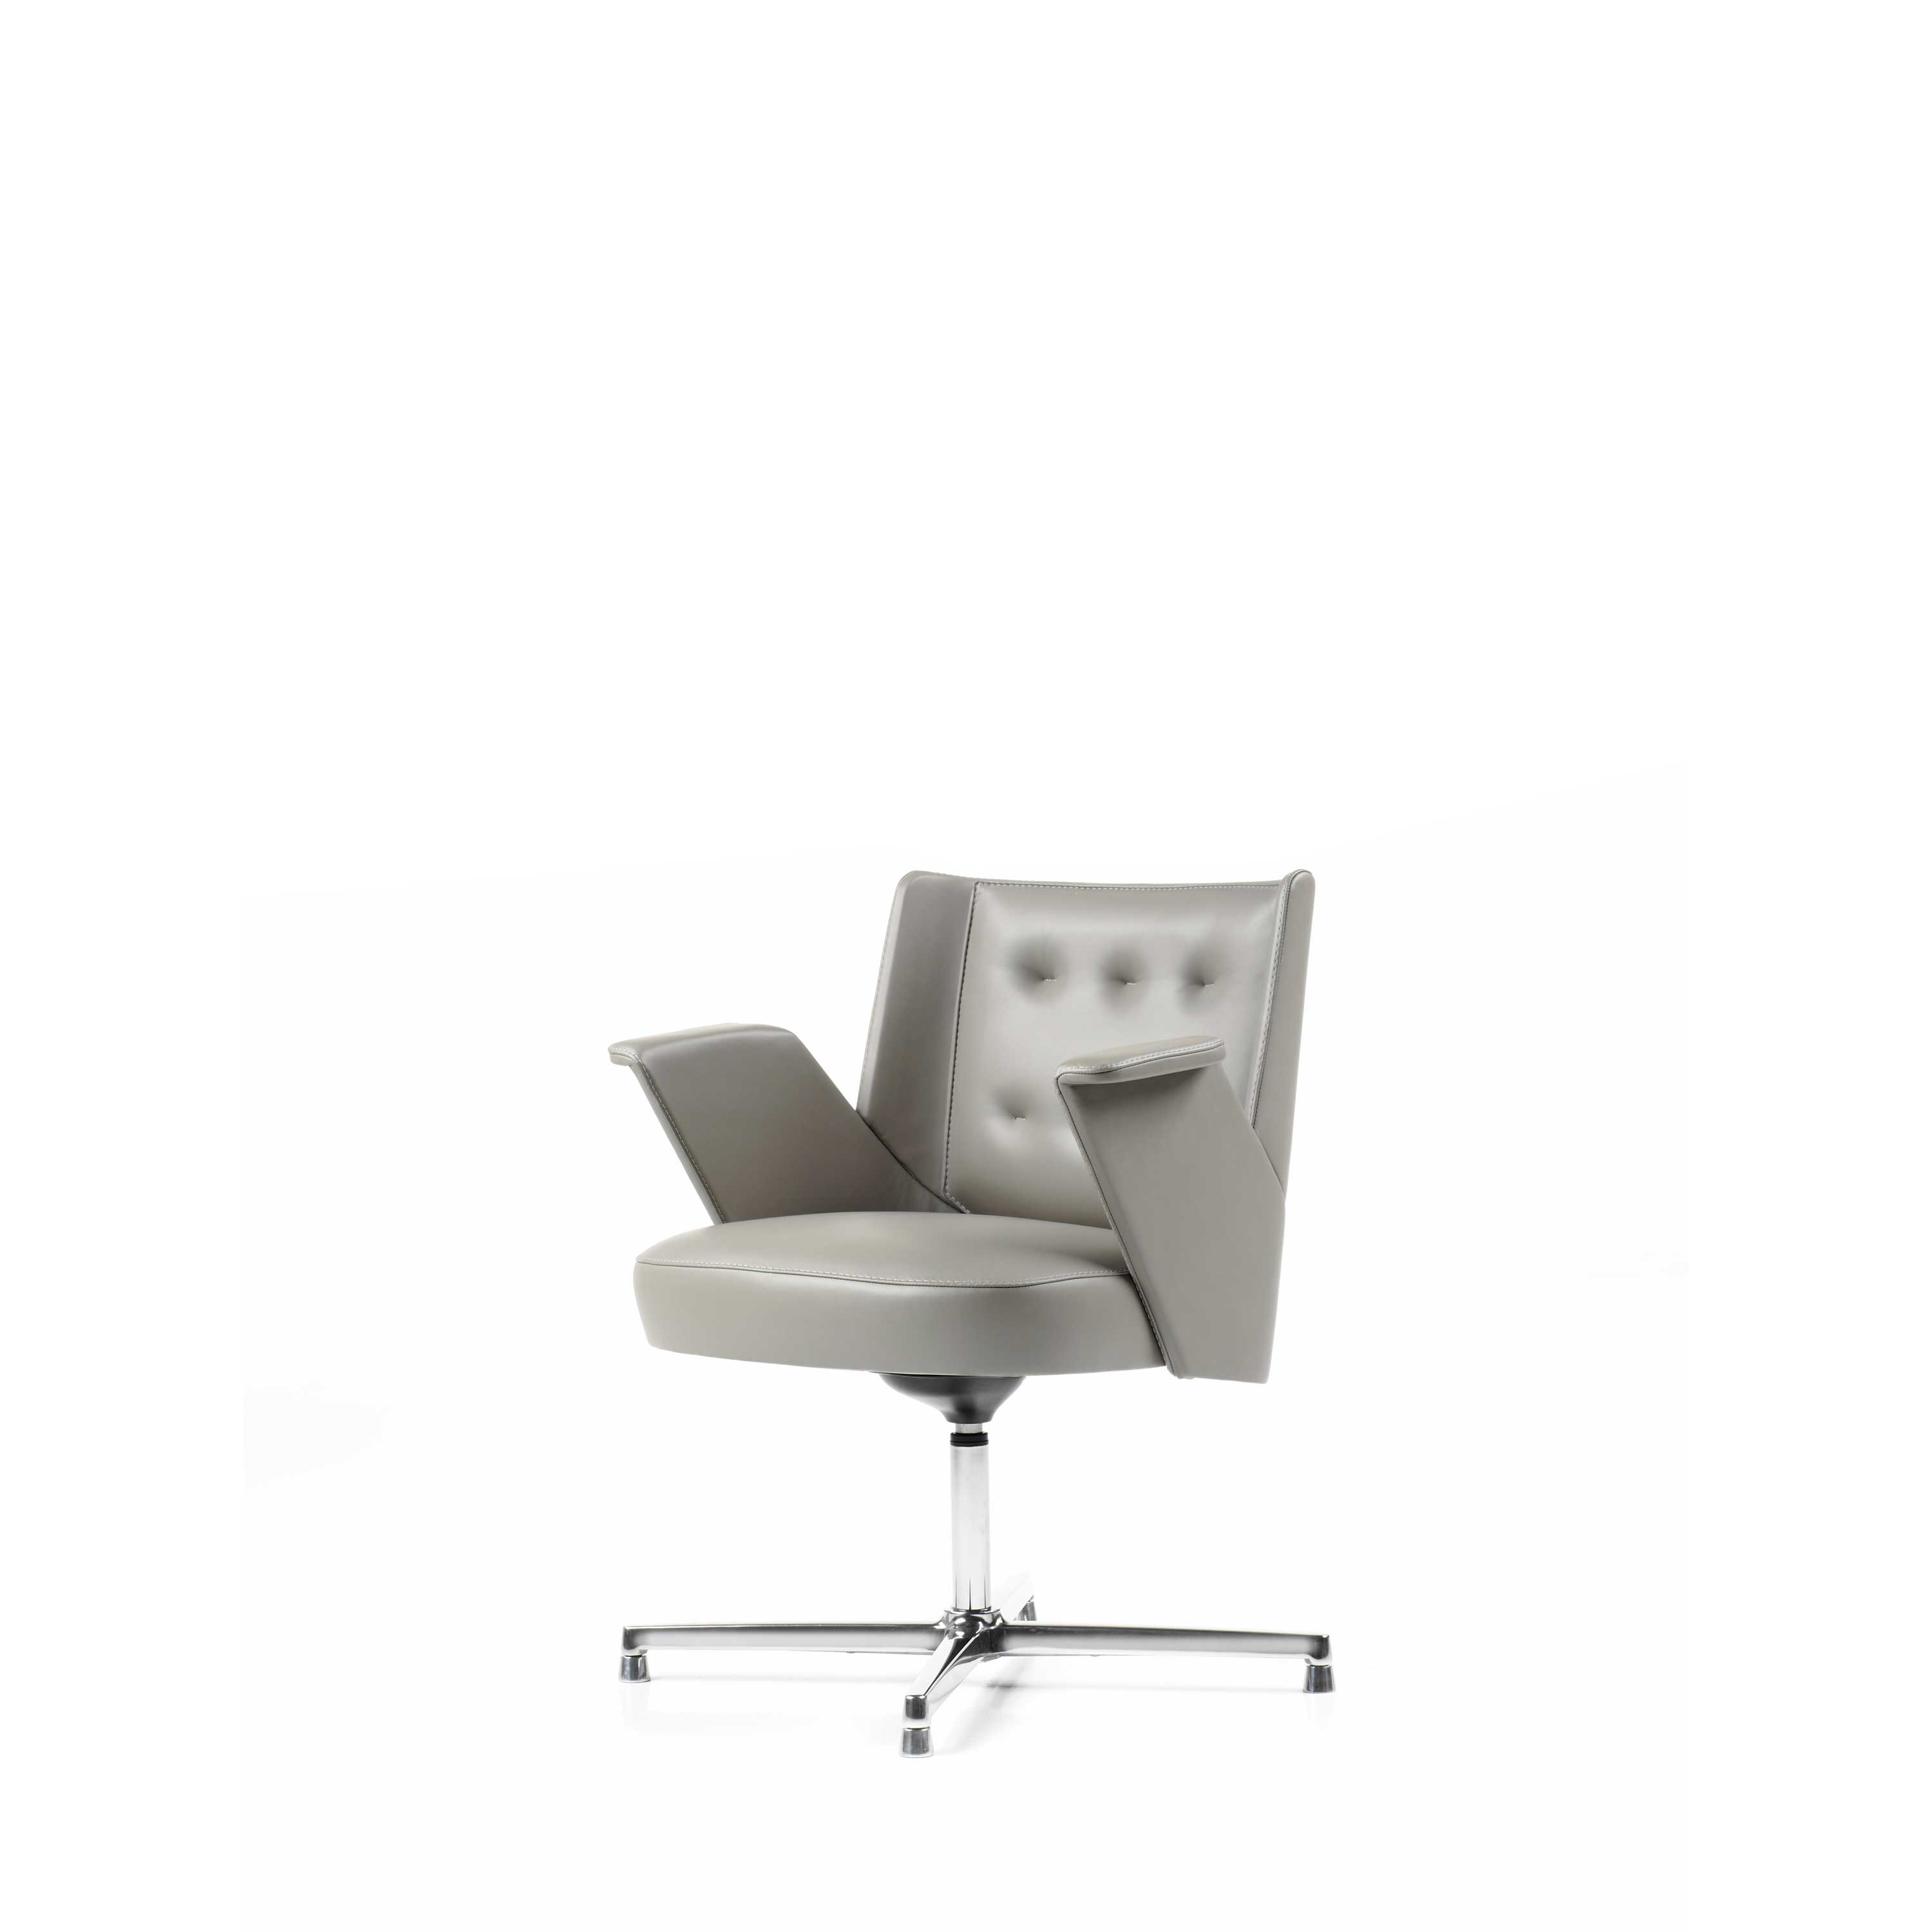 09S_Estel_Comfort&Relax_Office-Chair_Embrasse